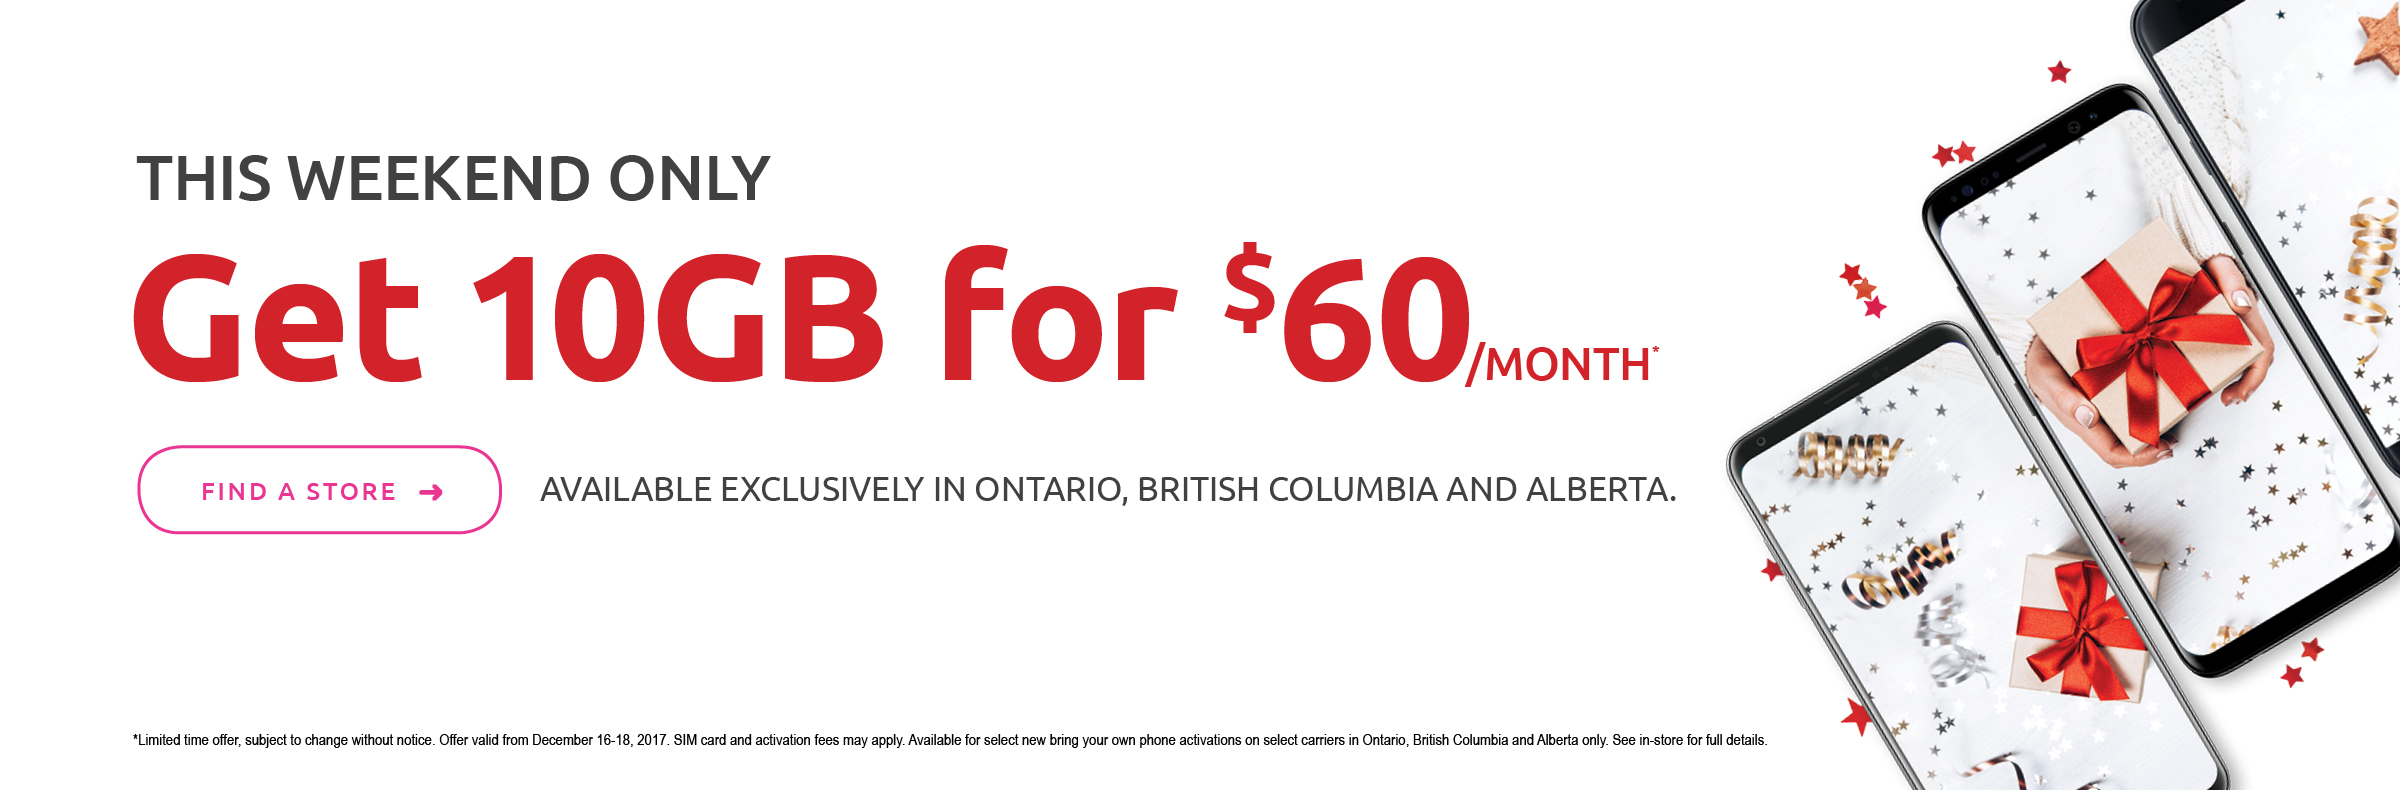 This Weekend Only  Get 10GB for $60 per month with Tbooth wireless